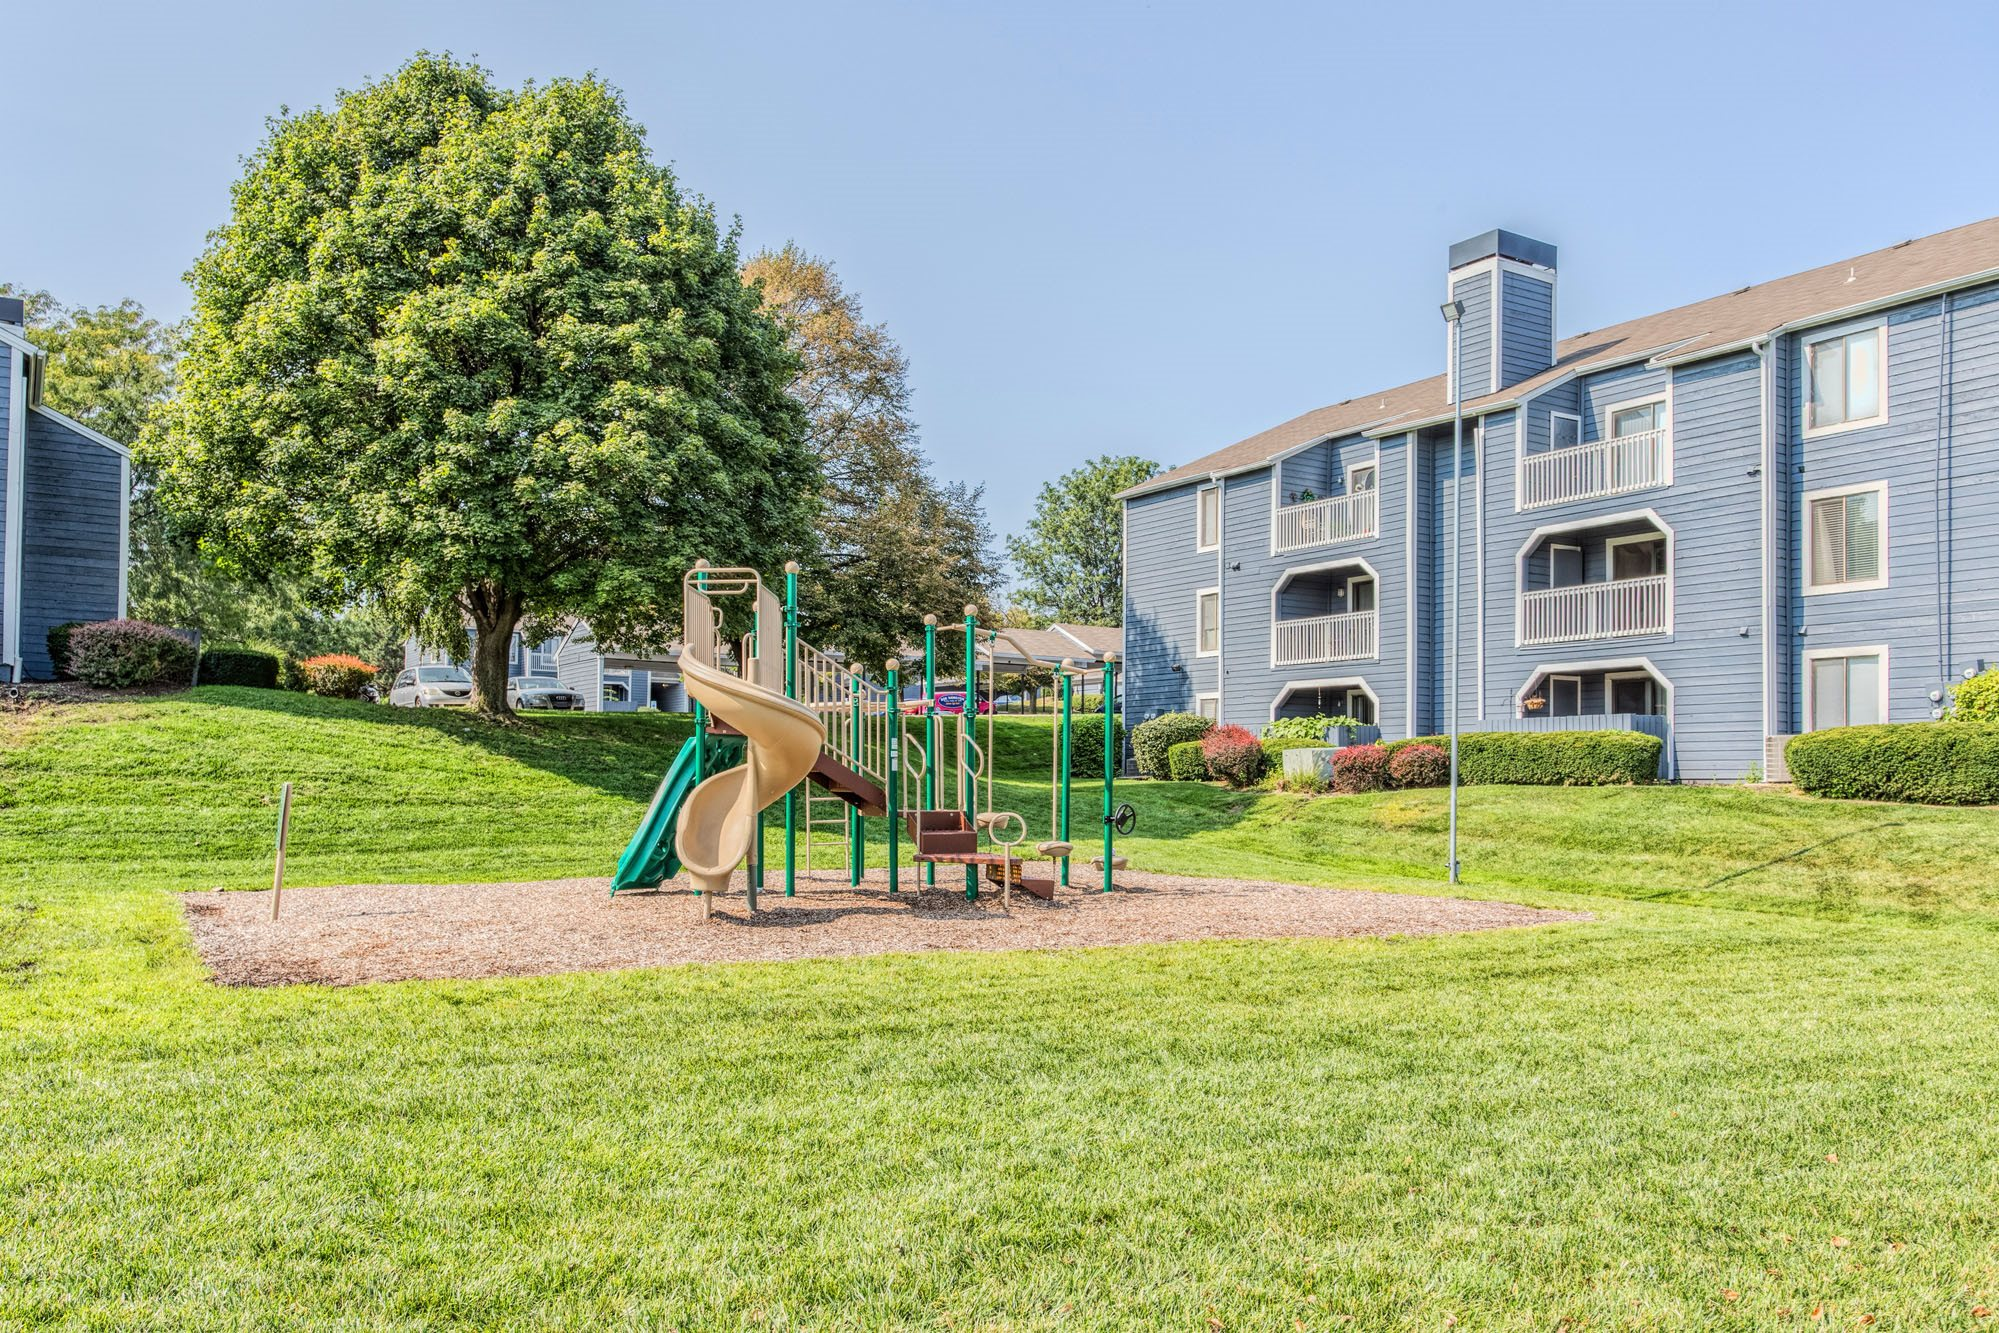 Playground at Perry 81 Apartments in Overland Park, Kansas